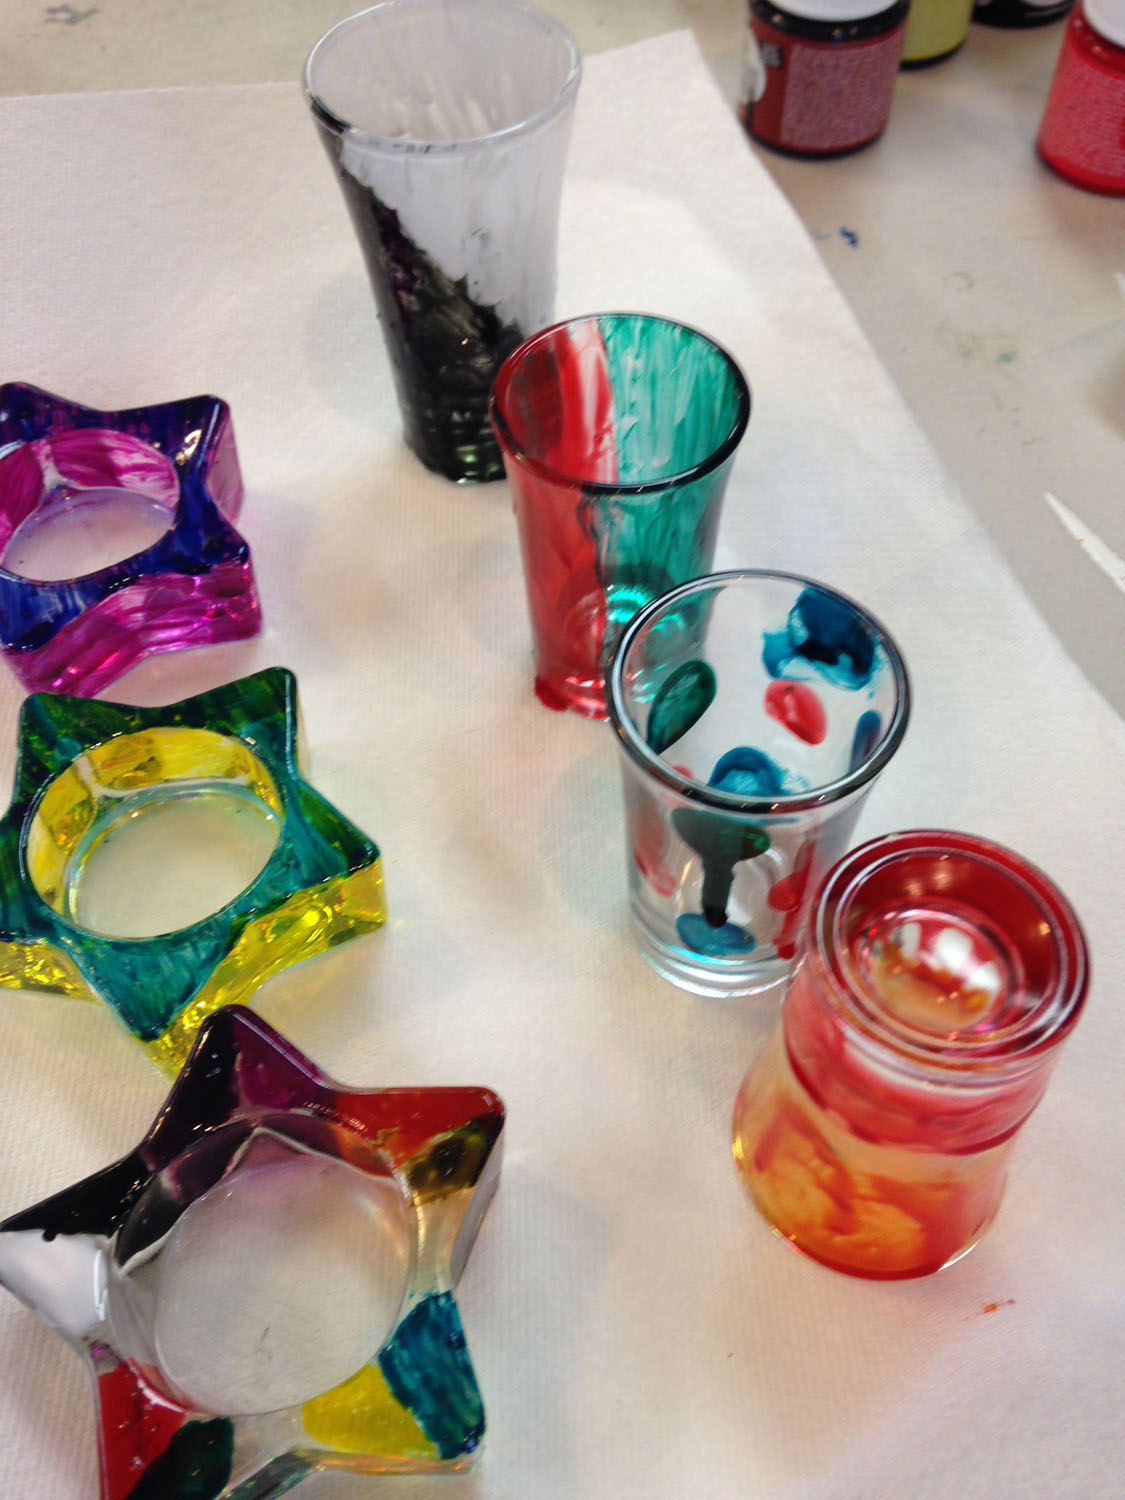 painted-glass-in-kids-art-parties-classes-and-camps-in-greensboro-nc-with-artist-tracey-j-marshallIMG_0267.jpg